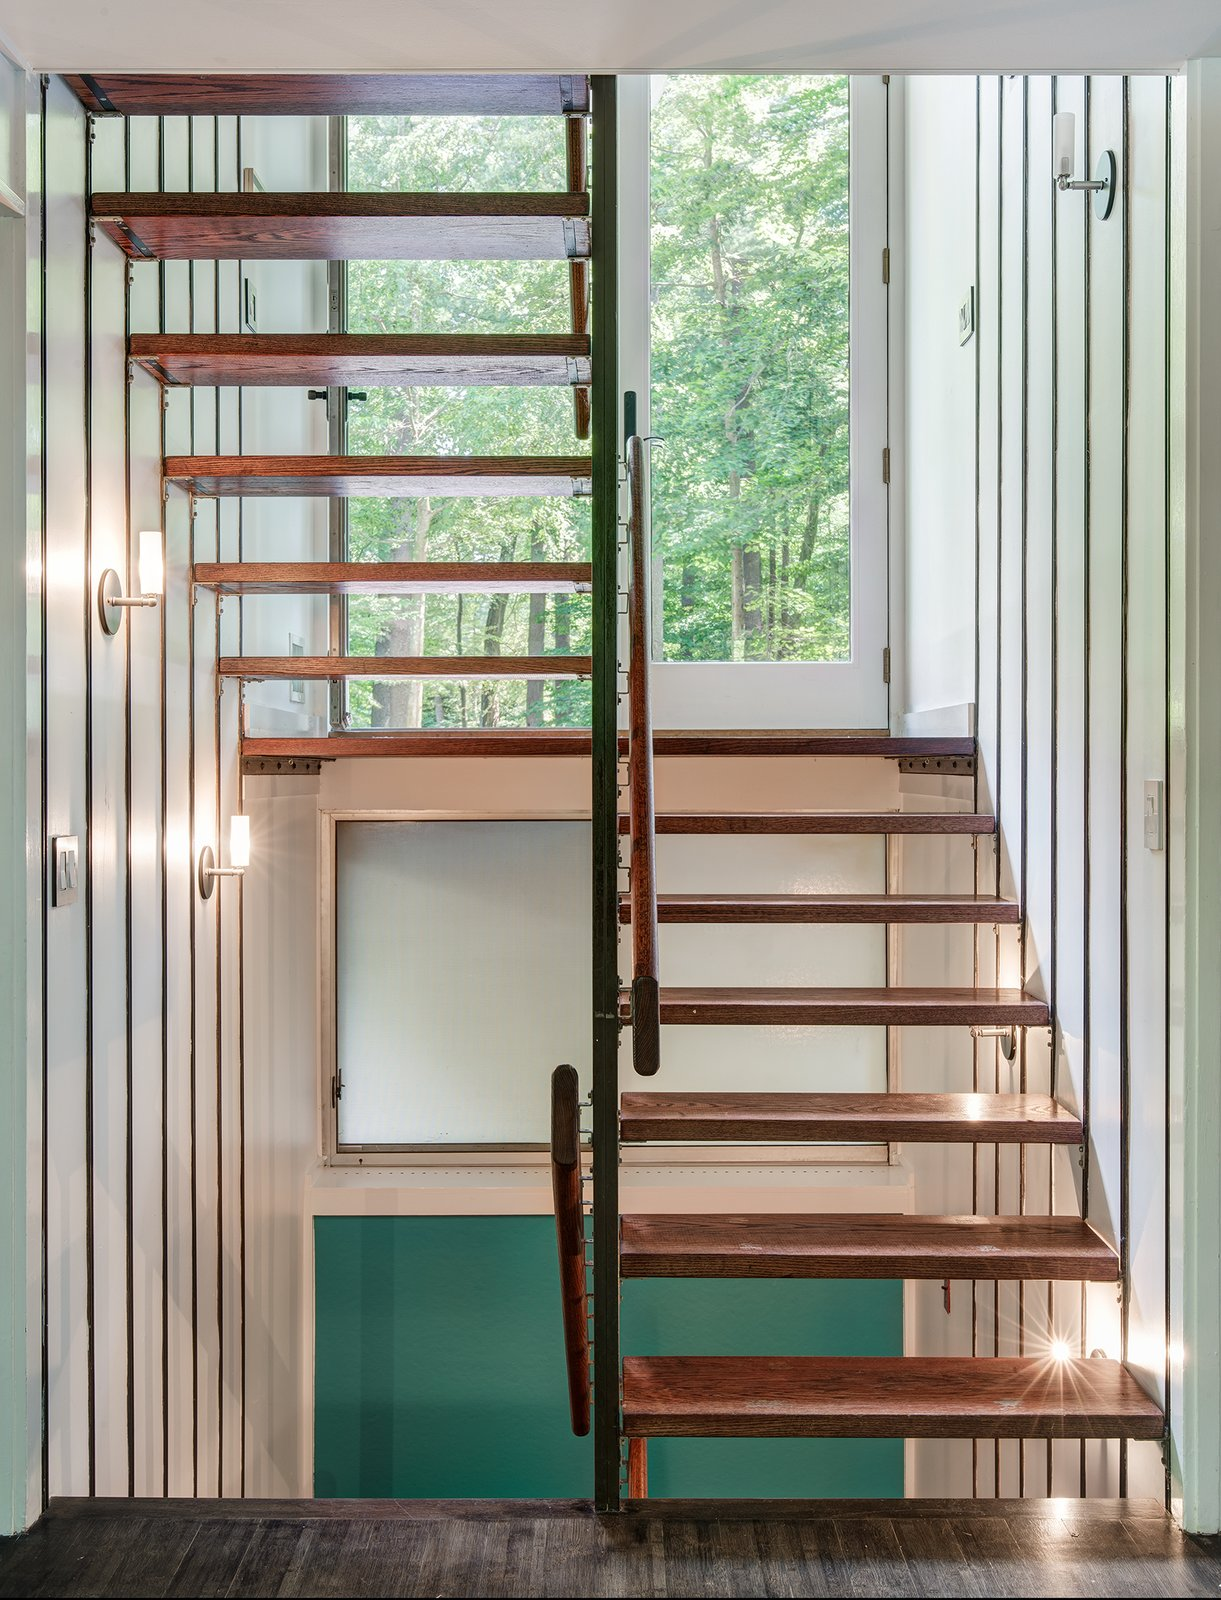 DeSilver House is a bi-level plan. The staircase was made by Unistruct Product Co in Chicago.  DeSilver House by John Black Lee + Harrison DeSilver   1961